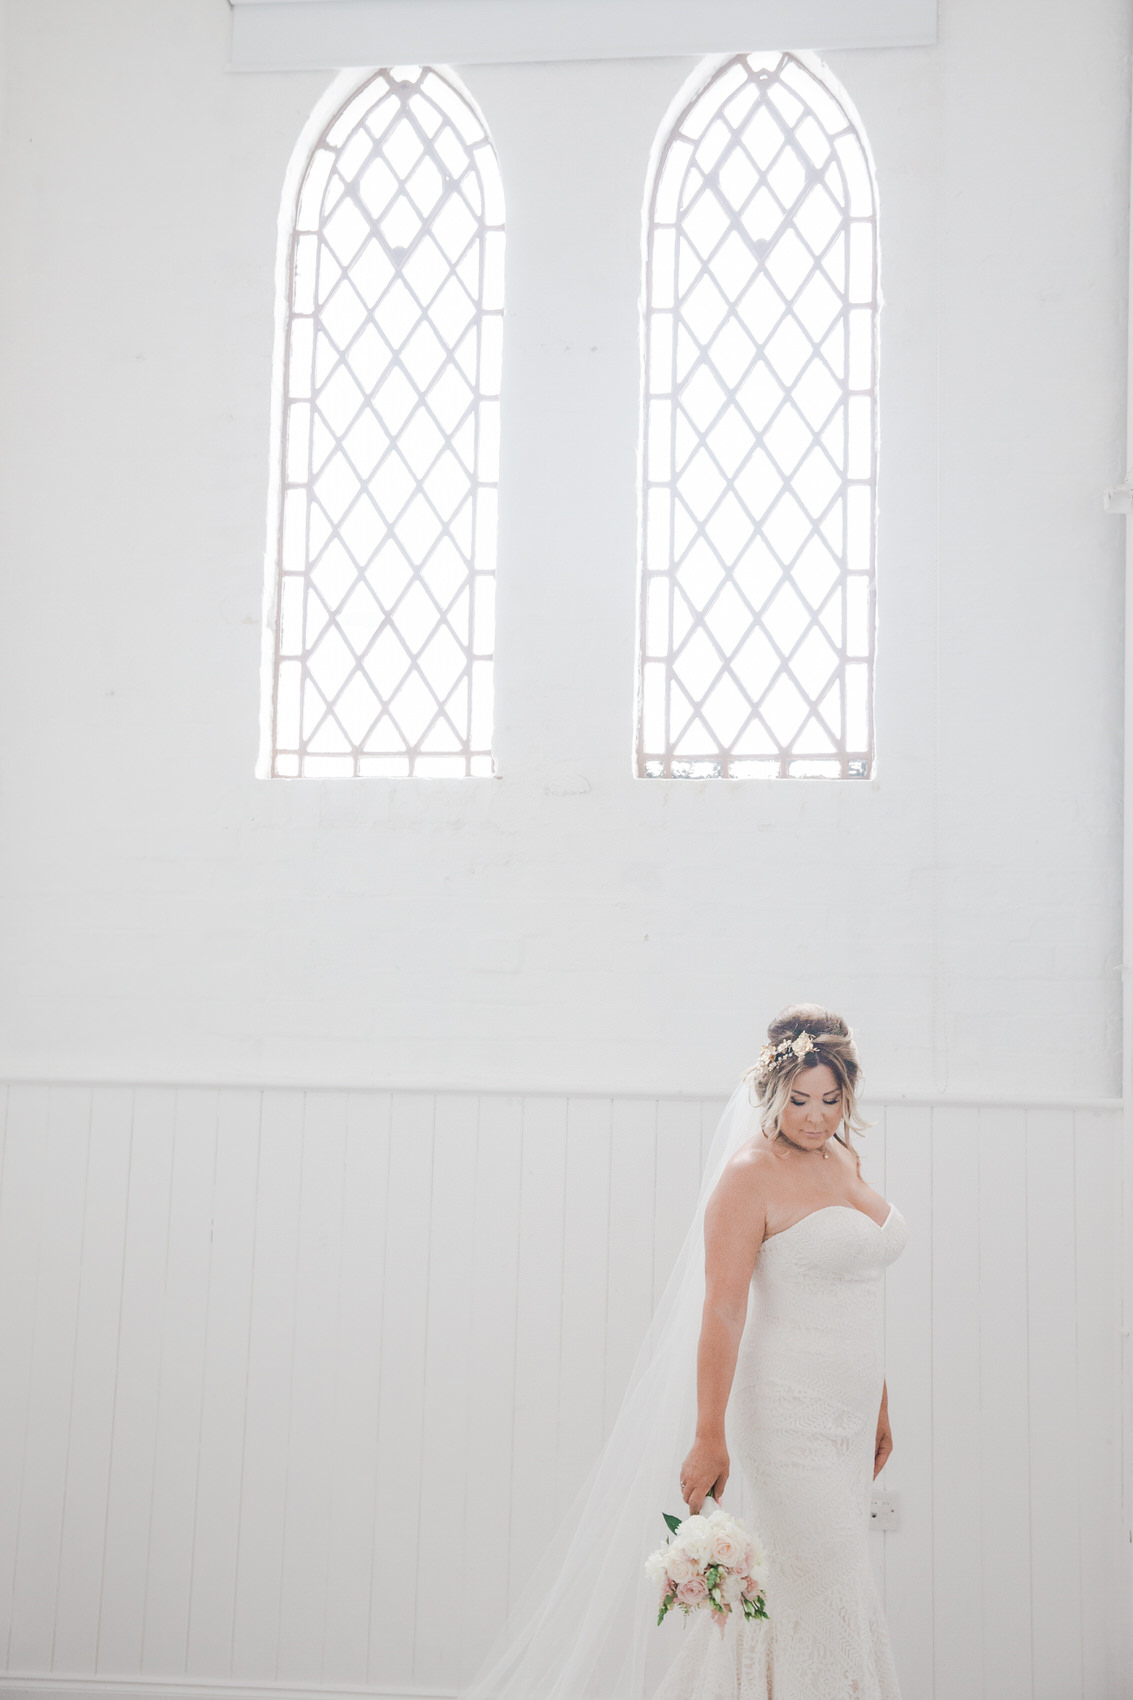 Glamorous Alternative Wedding at Fazeley Studios023